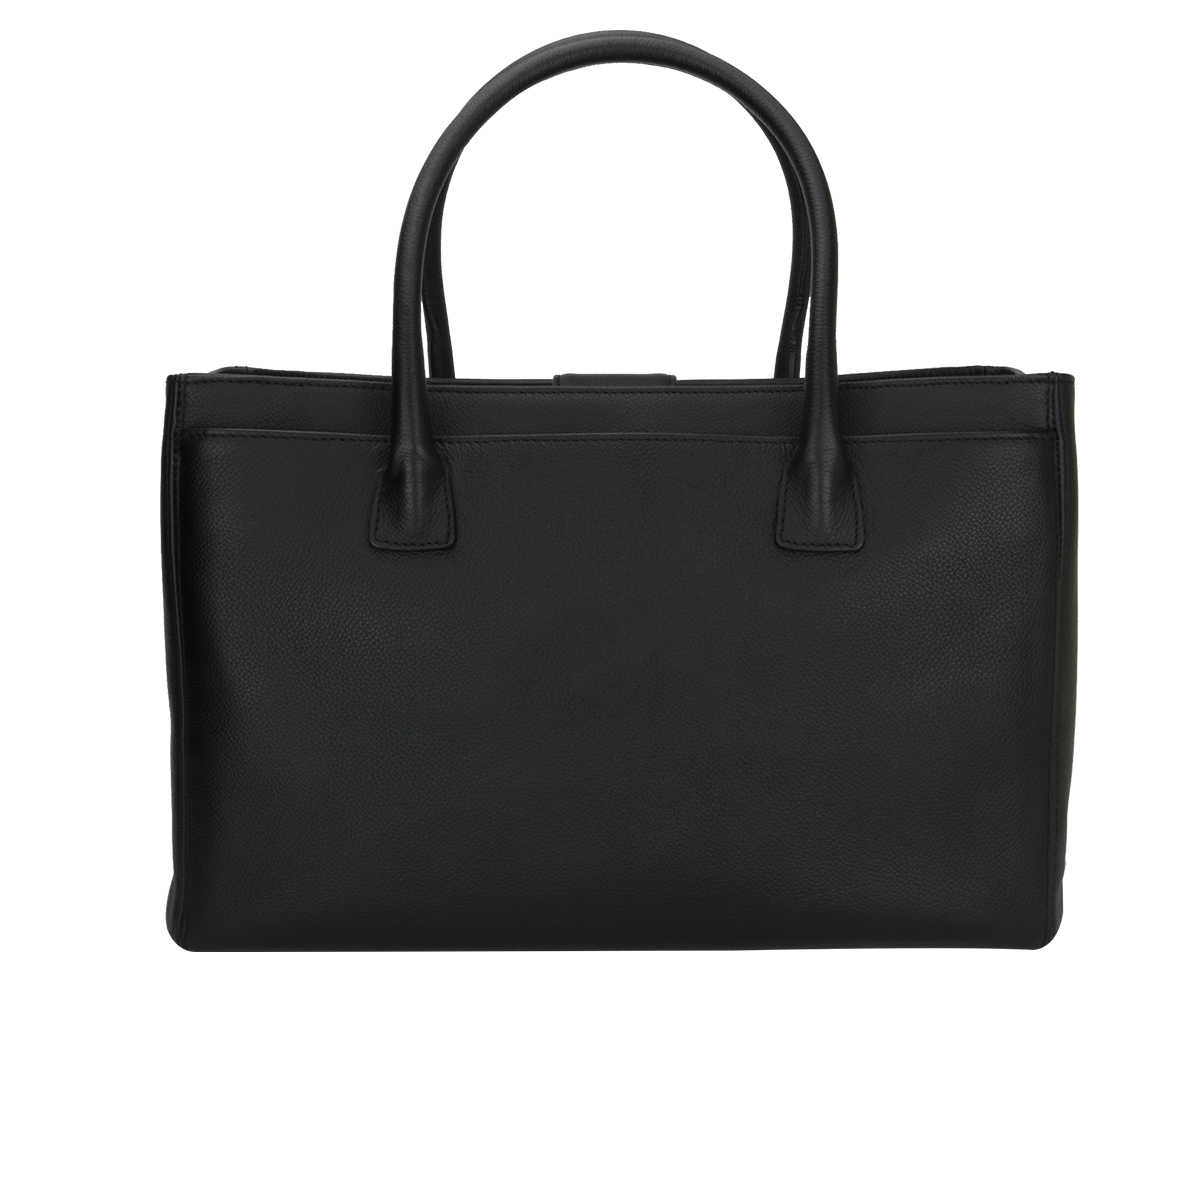 0c6e255cafdb8d Chanel Executive Tote Price 2018 | Stanford Center for Opportunity ...